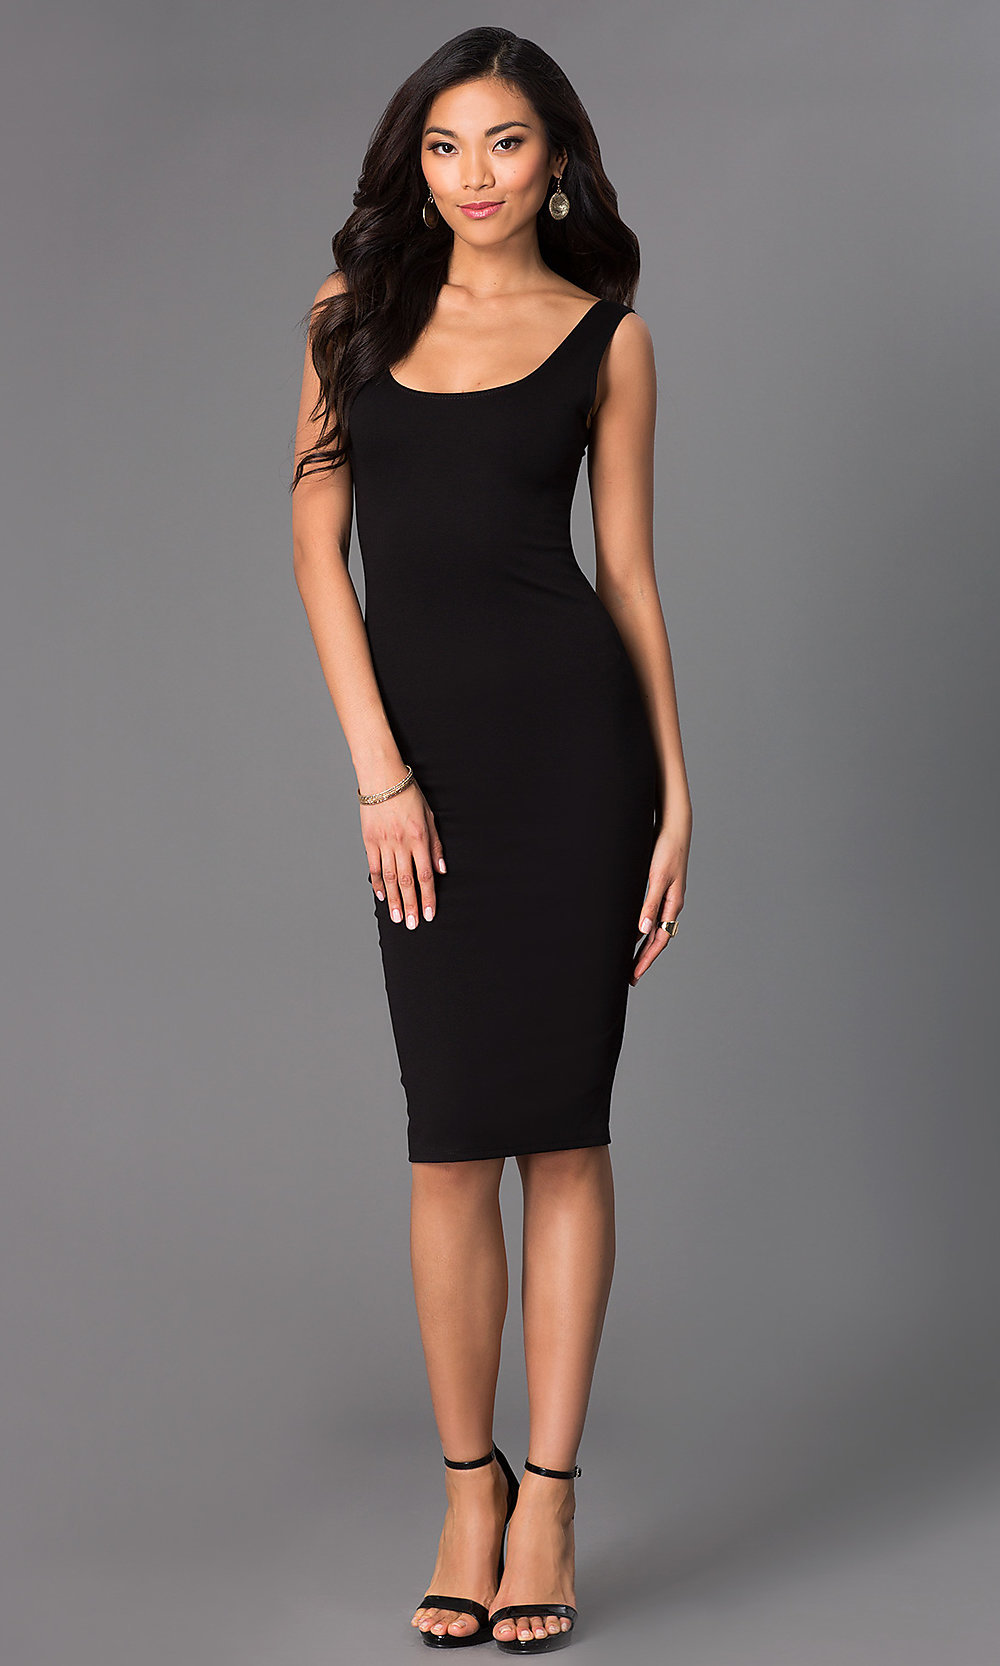 Scoop-Neck Sleeveless Midi Party Dresses- PromGirl